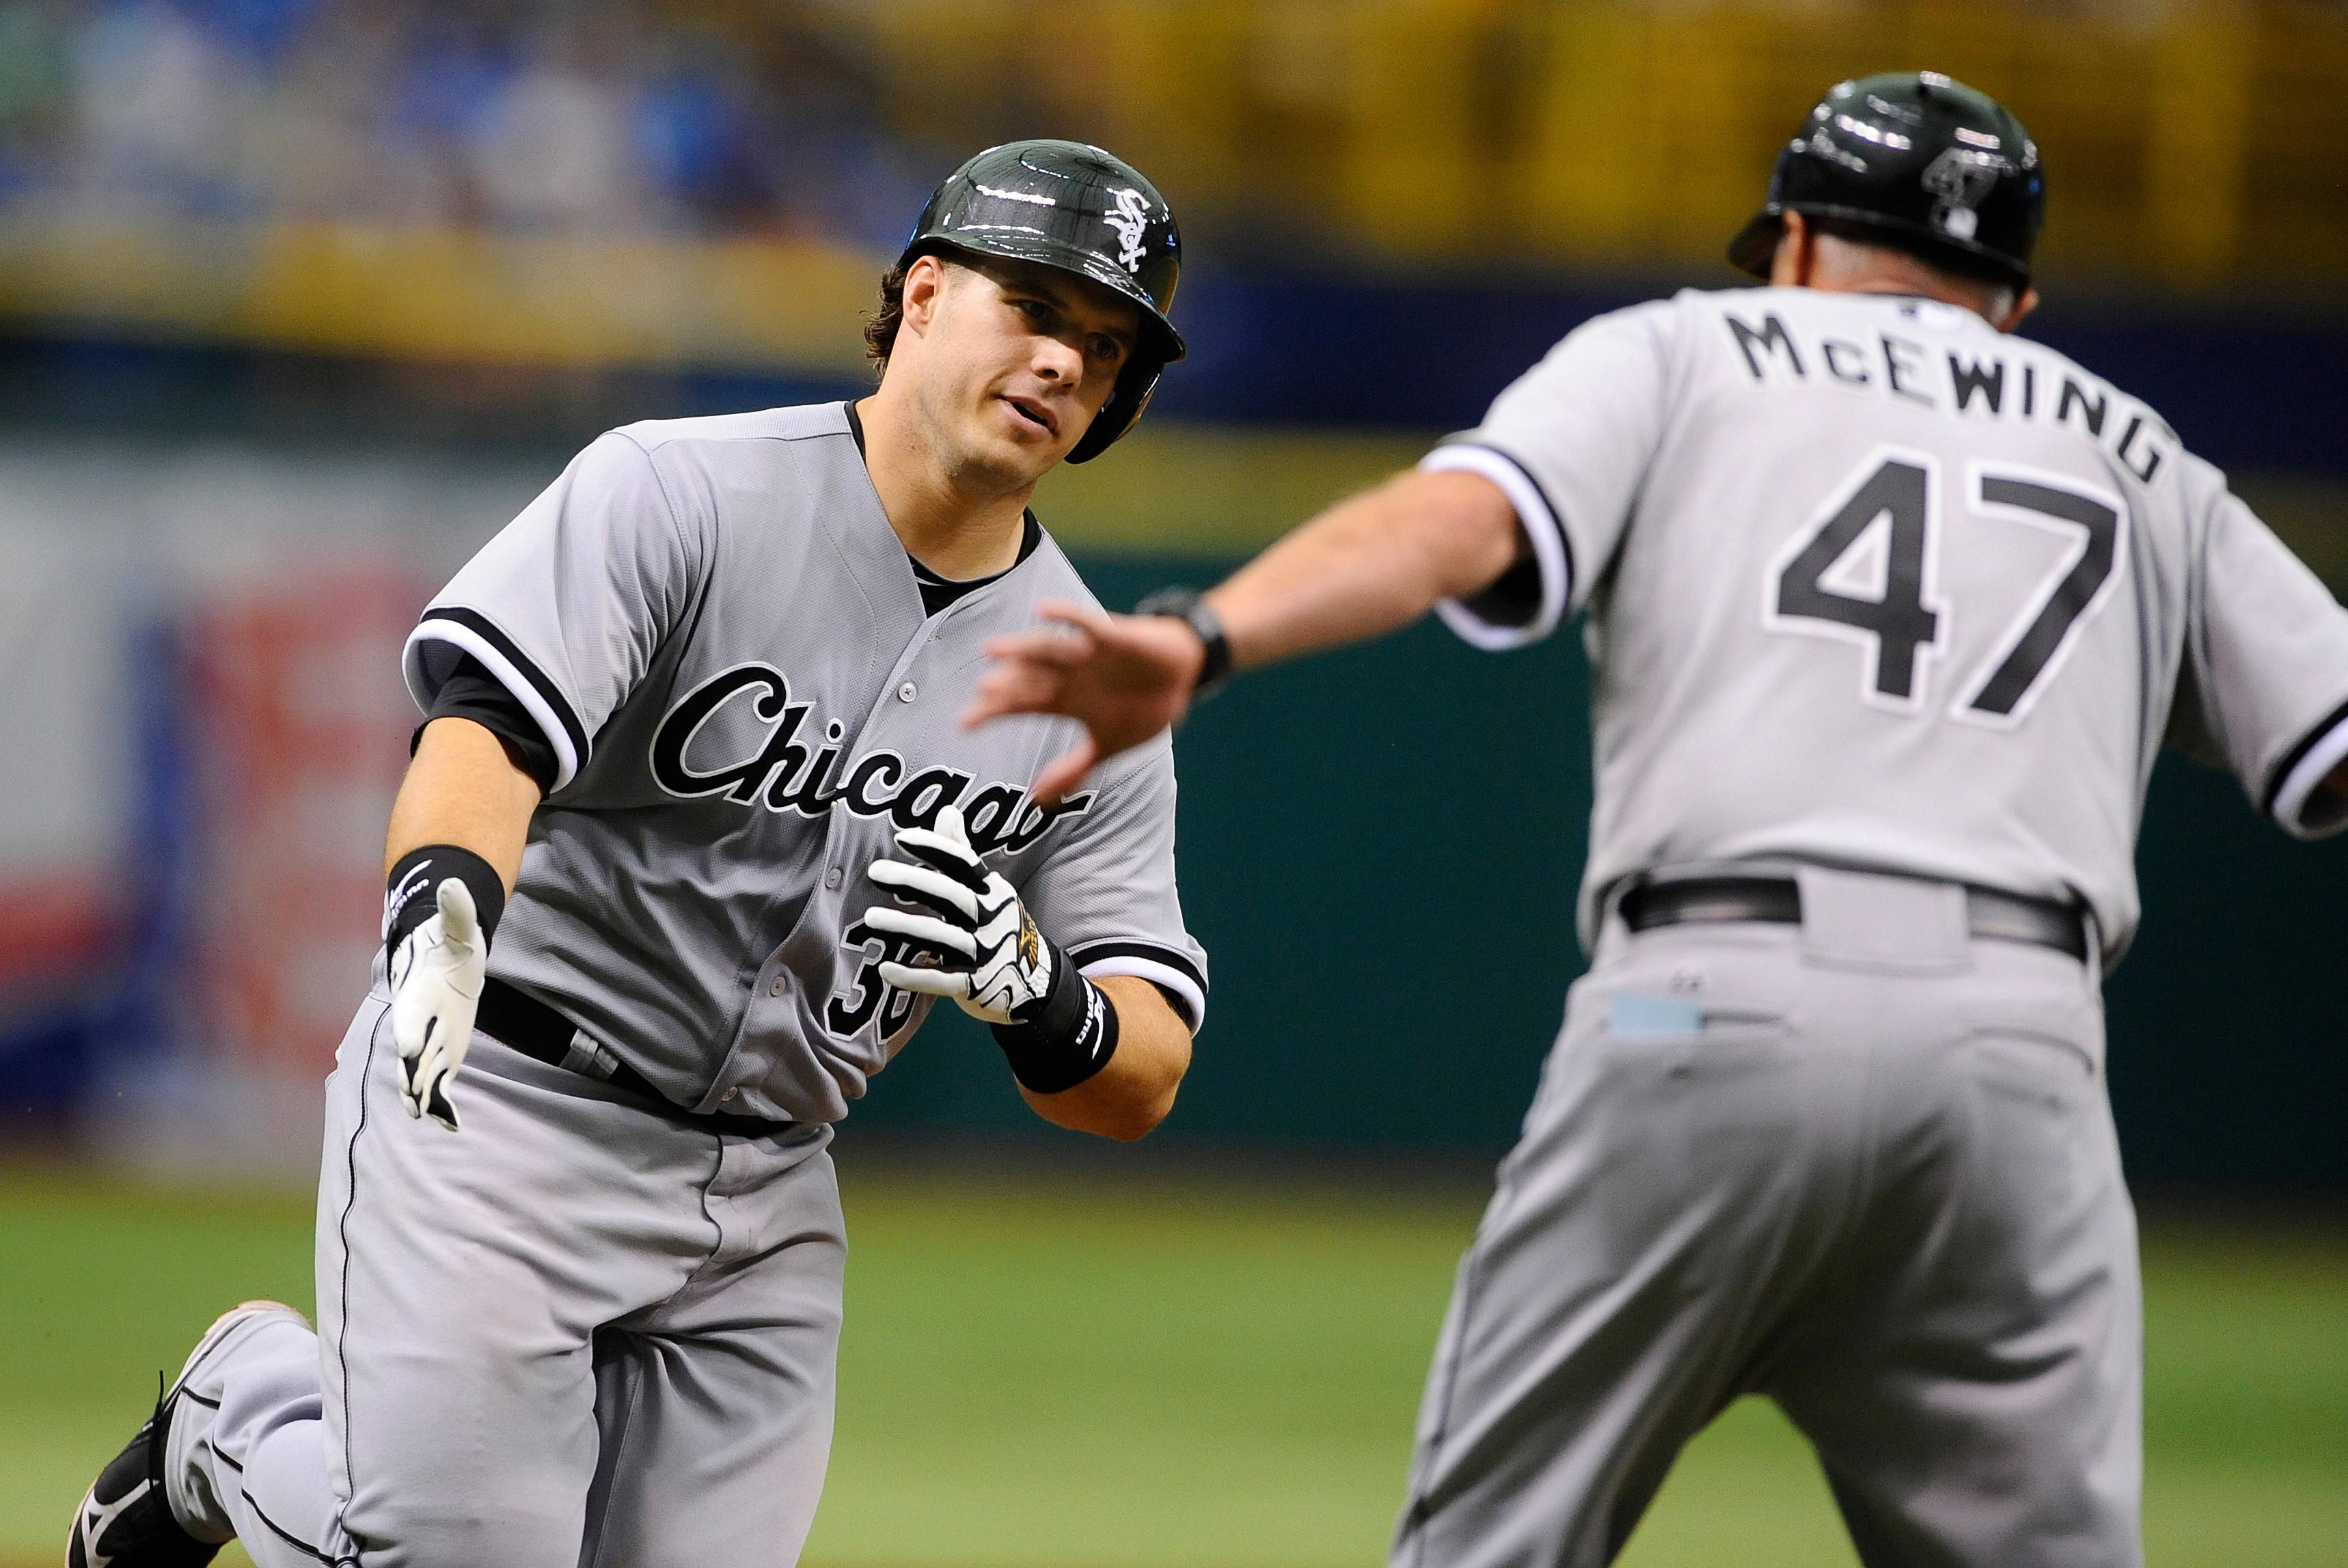 White Sox send Phegley packing to the minor leagues